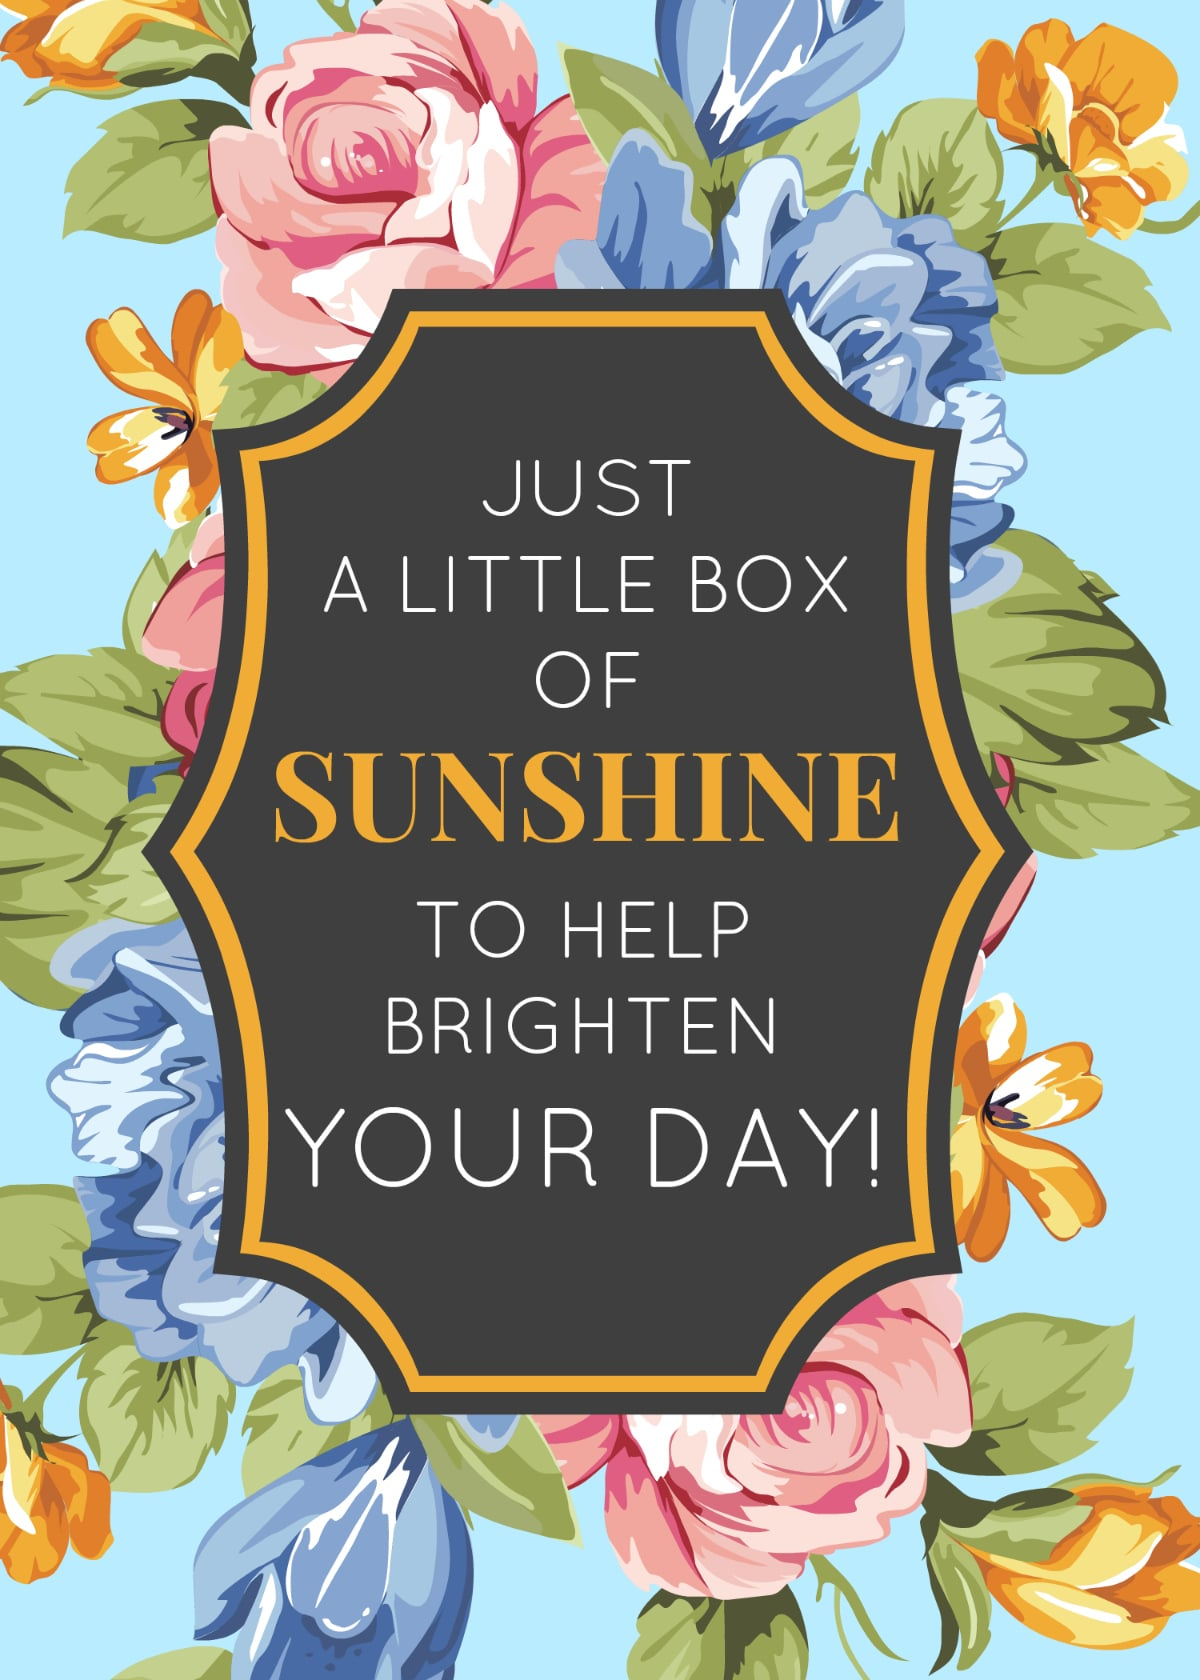 5 Ideas For A Box Of Sunshine The Naptime Reviewer